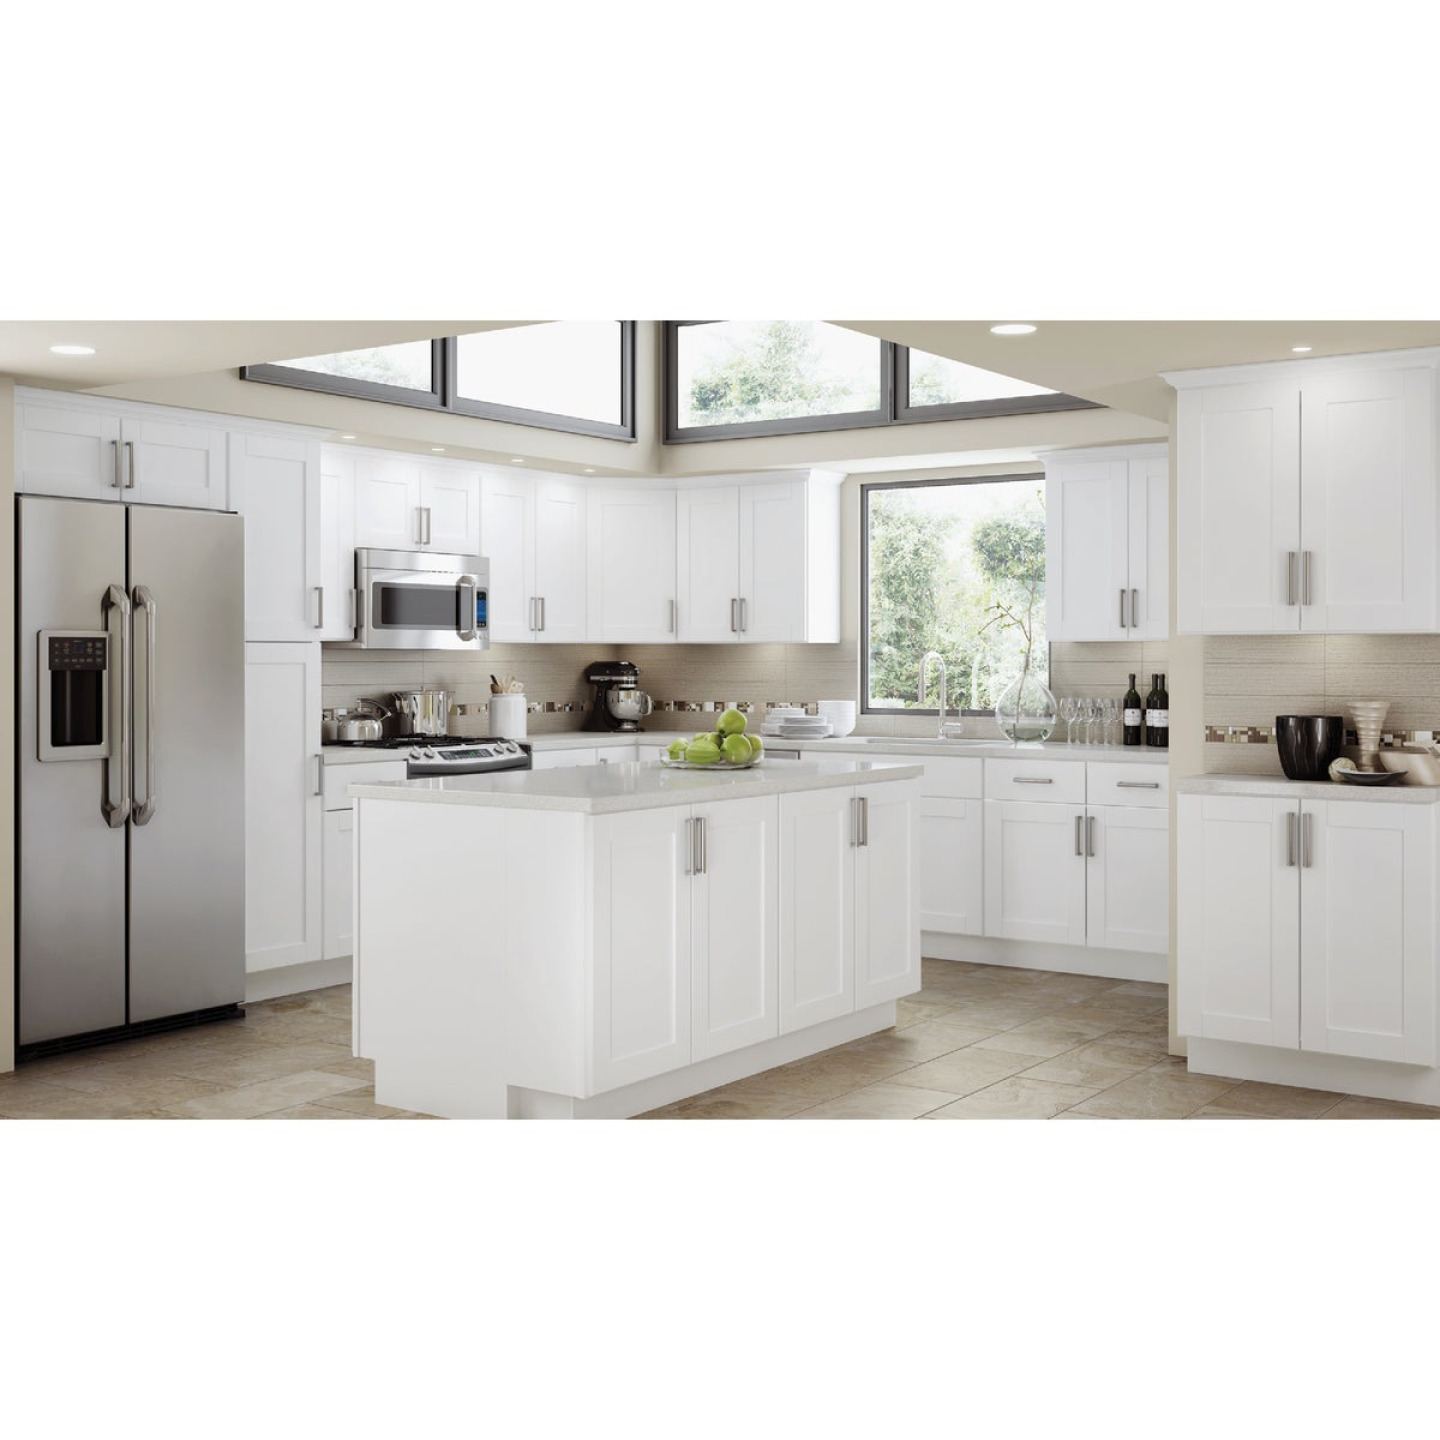 Continental Cabinets Andover Shaker 24 In. W x 30 In. H x 12 In. D White Thermofoil Wall Kitchen Cabinet Image 2